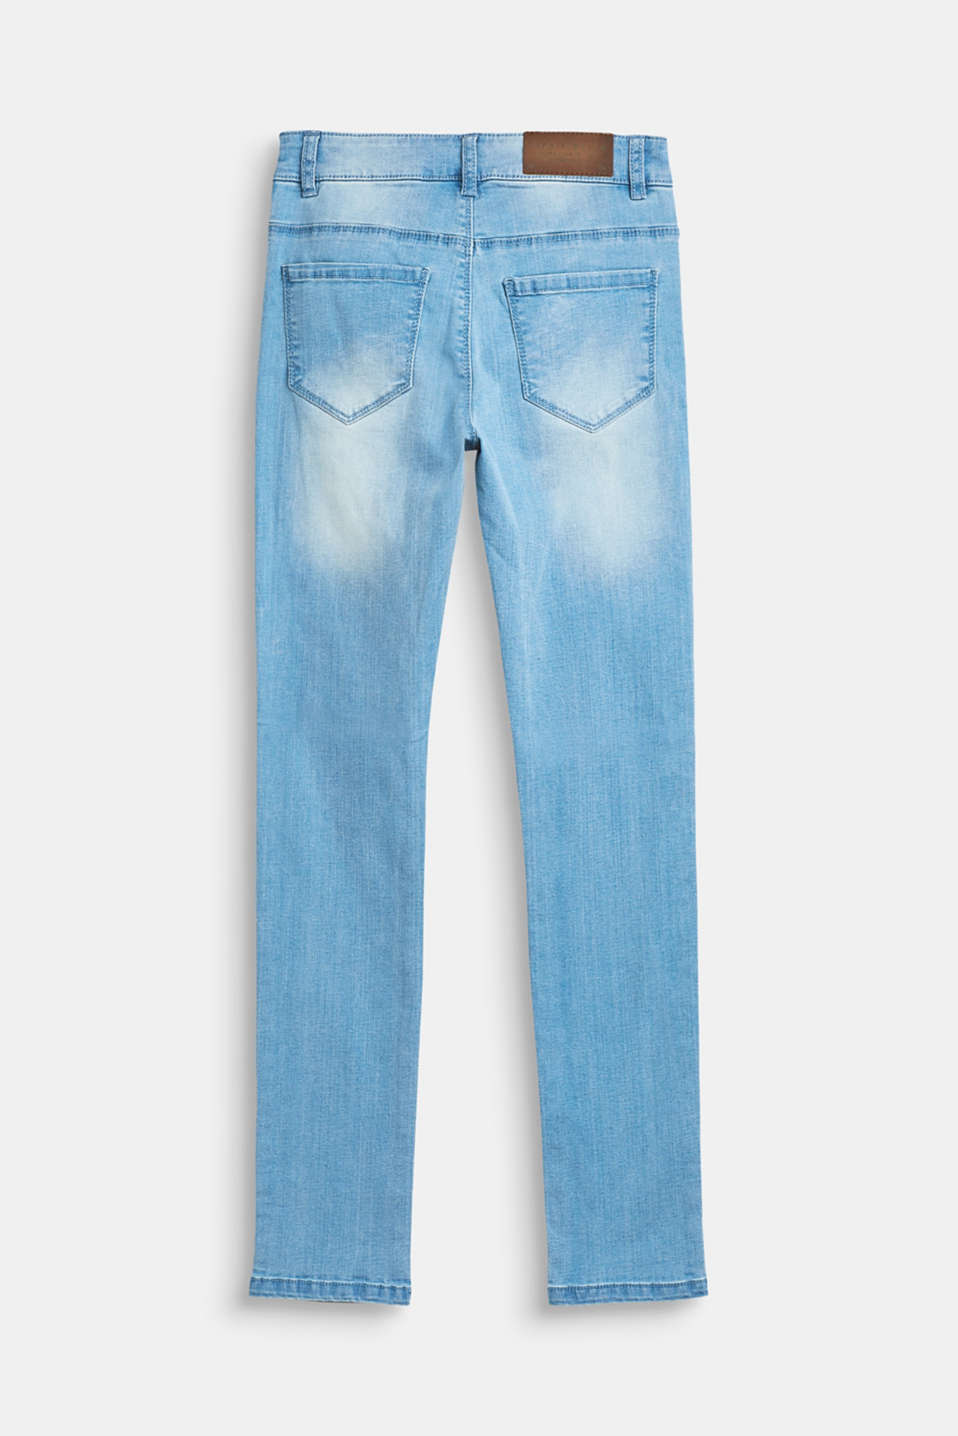 Stretch jeans with stripes and an adjustable waist, LCBLUE LIGHT WAS, detail image number 1